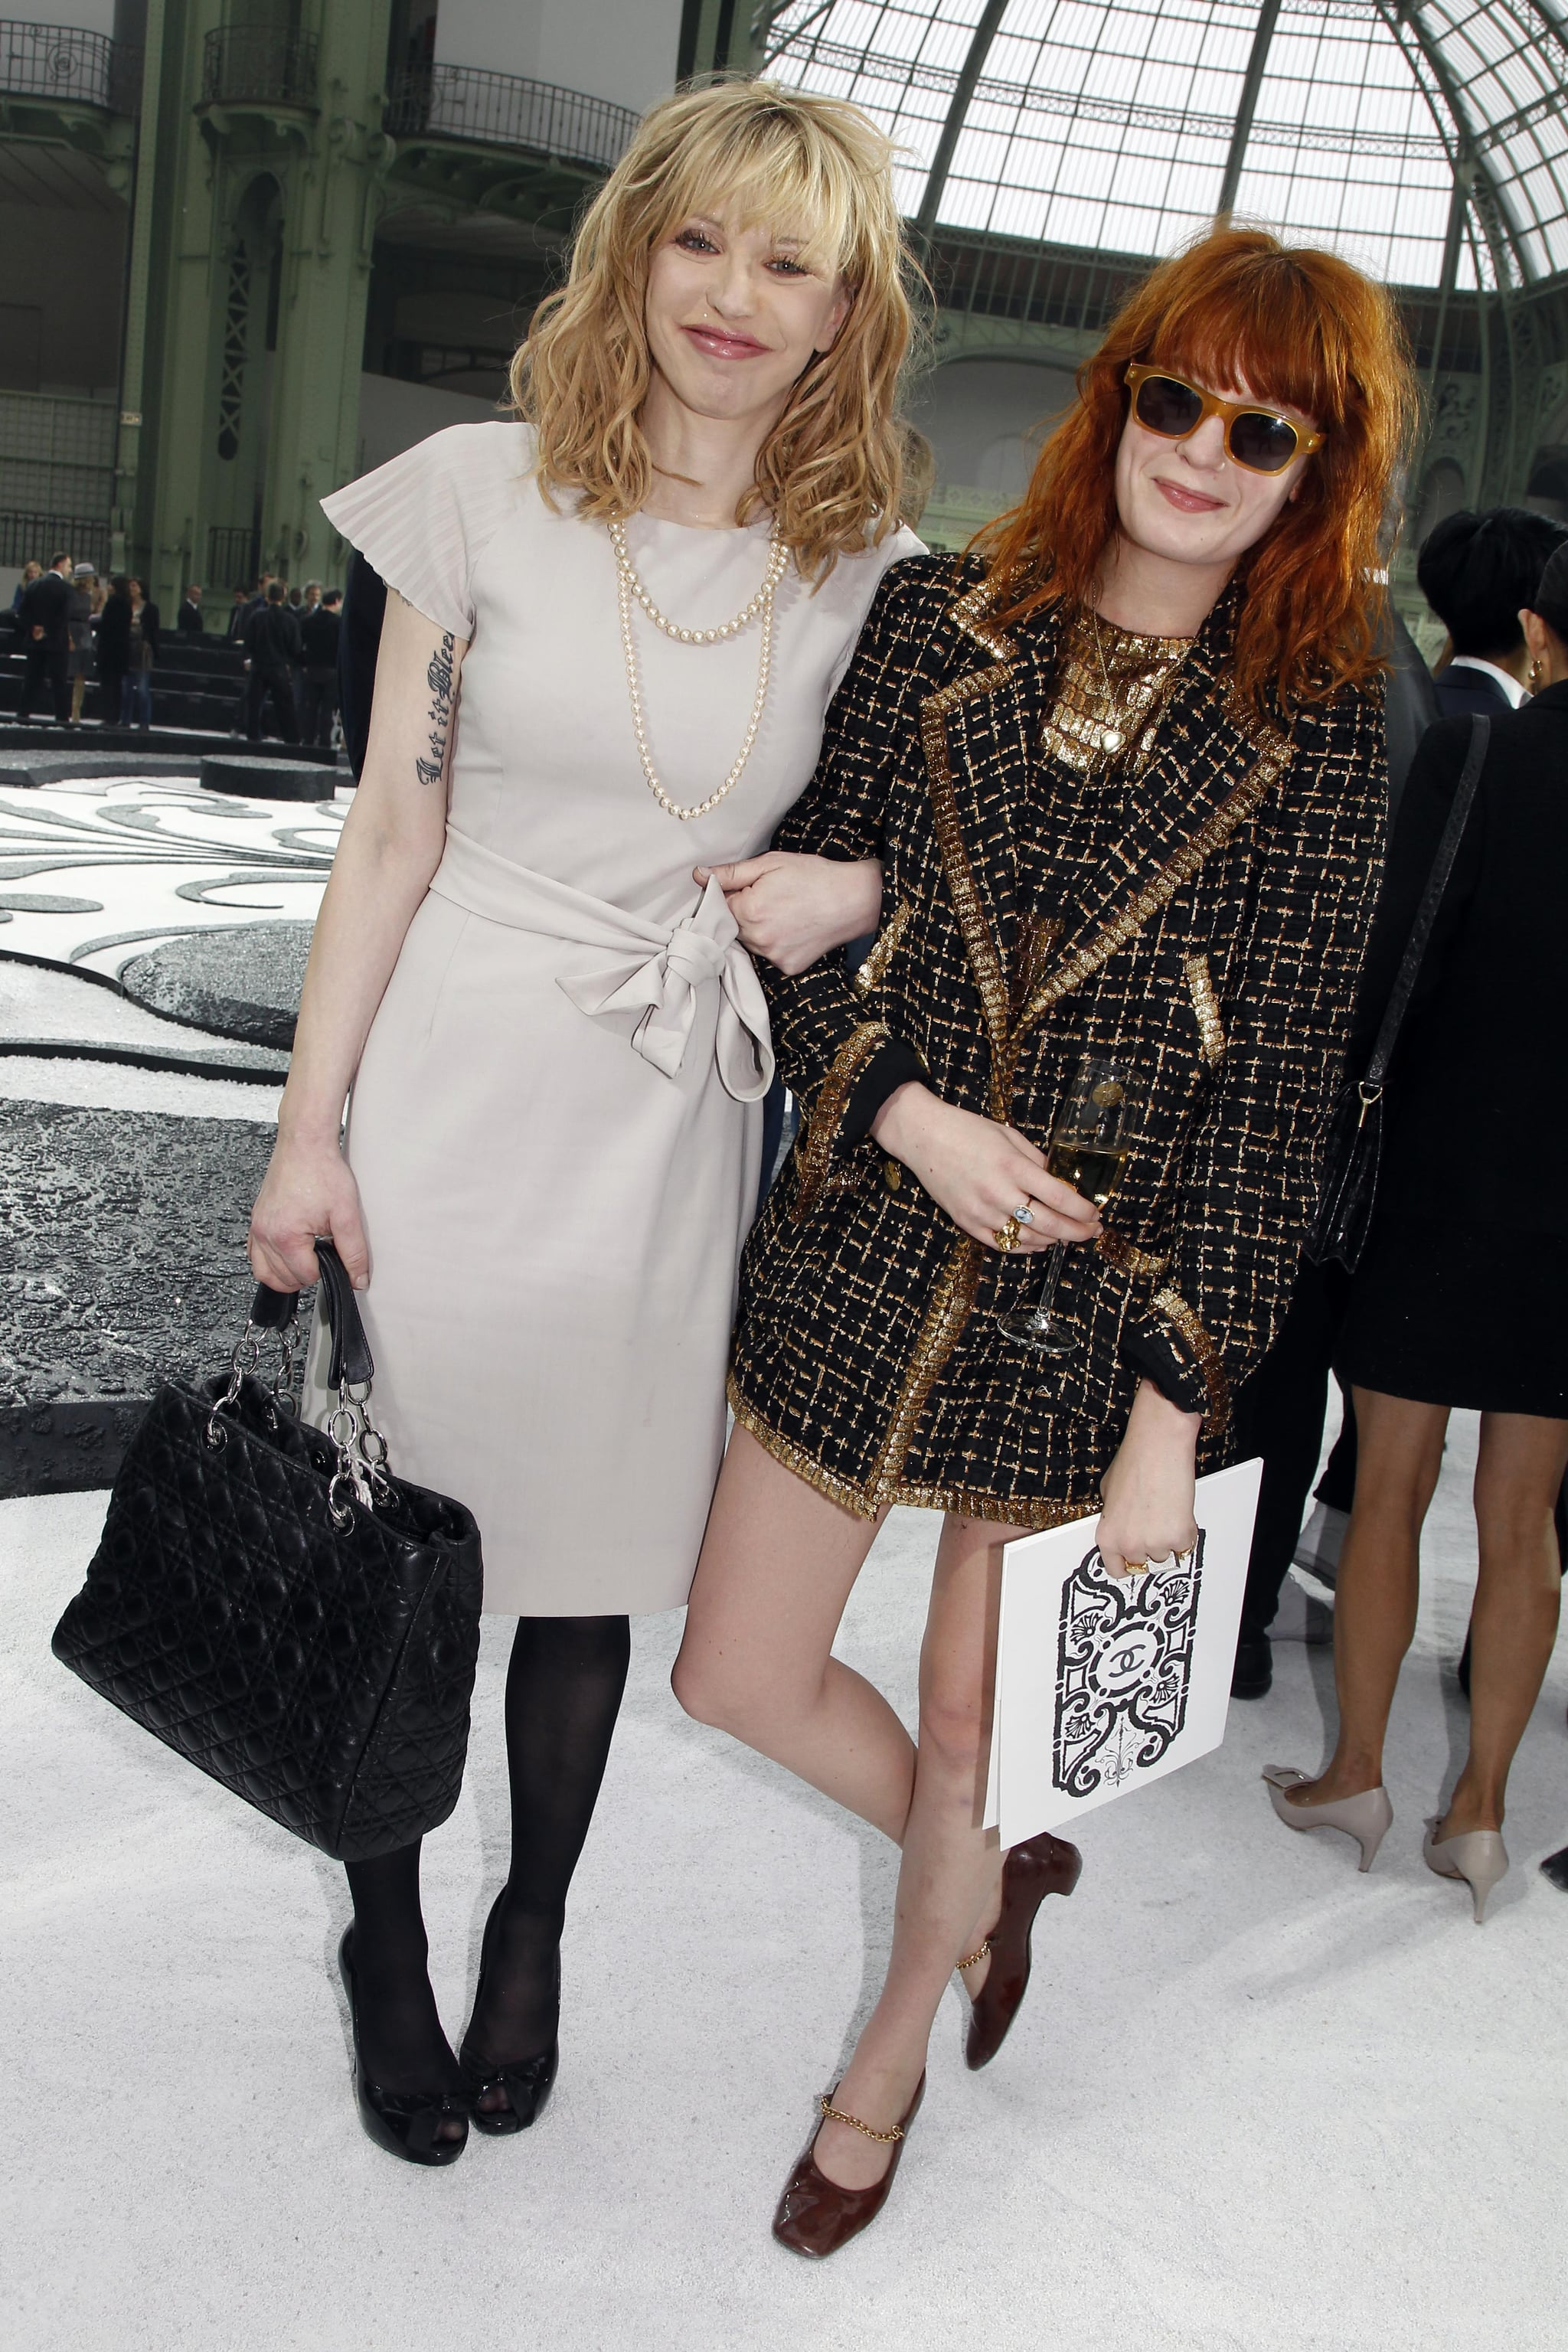 Florence Welch and Courntey Love